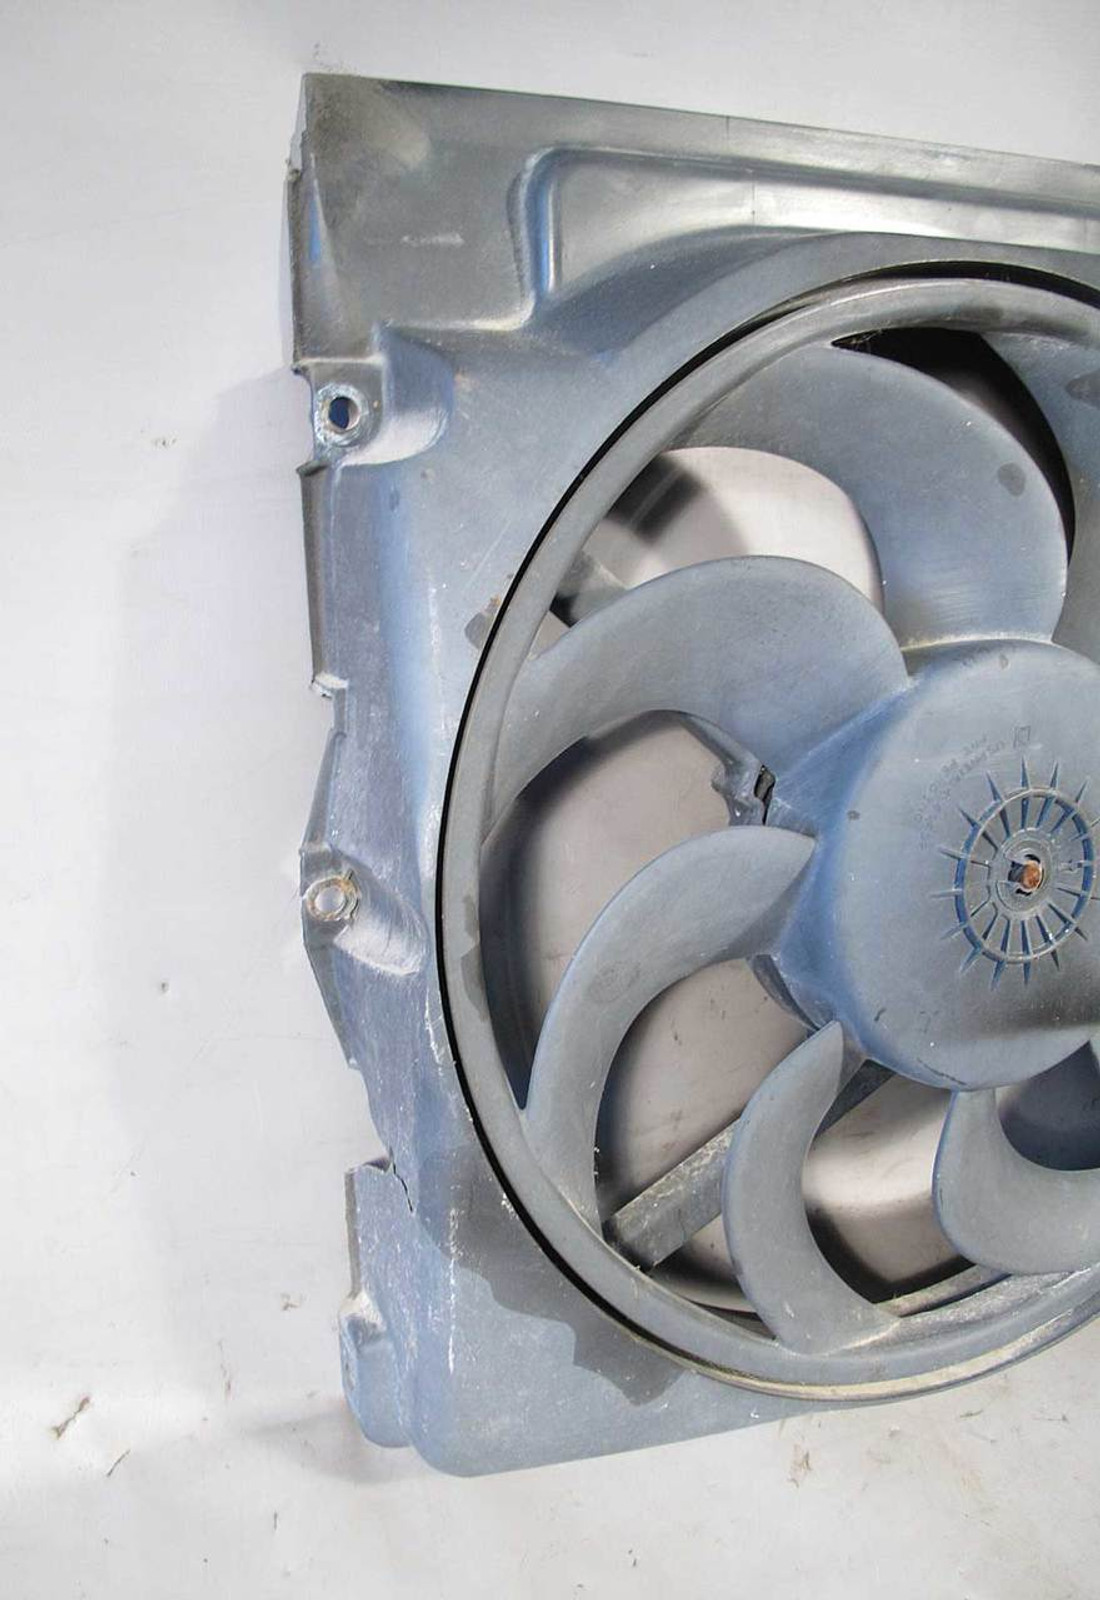 Bmw E36 3 Series Auxiliary Electric Pusher Ac Fan W Cracked Shroud Wiring